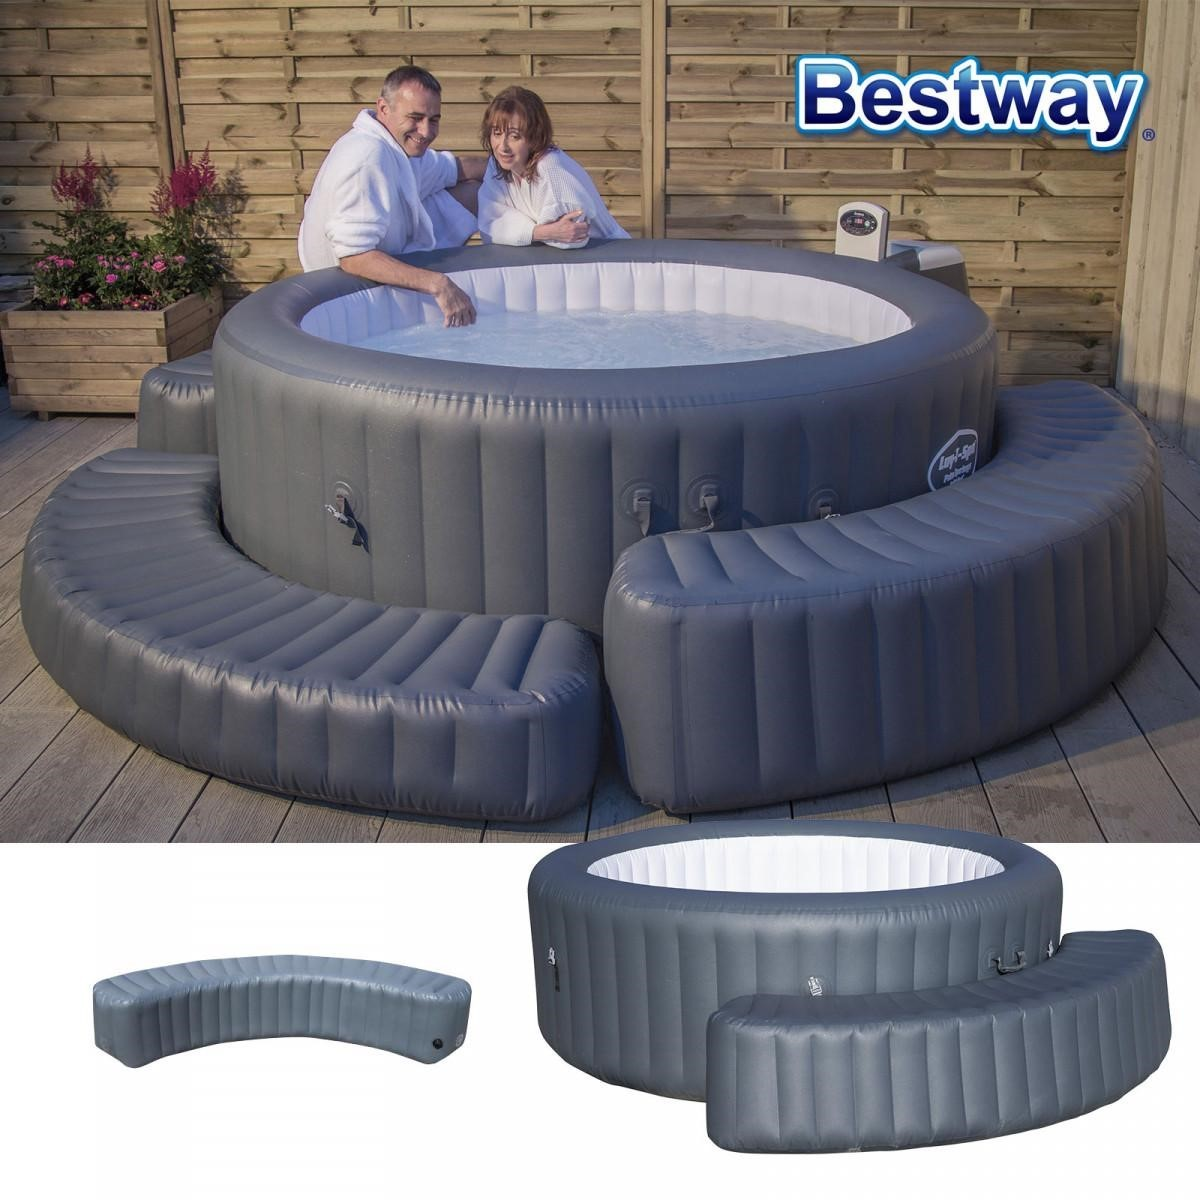 How To Set Up Your Inflatable Hot Tub Indoors Blog